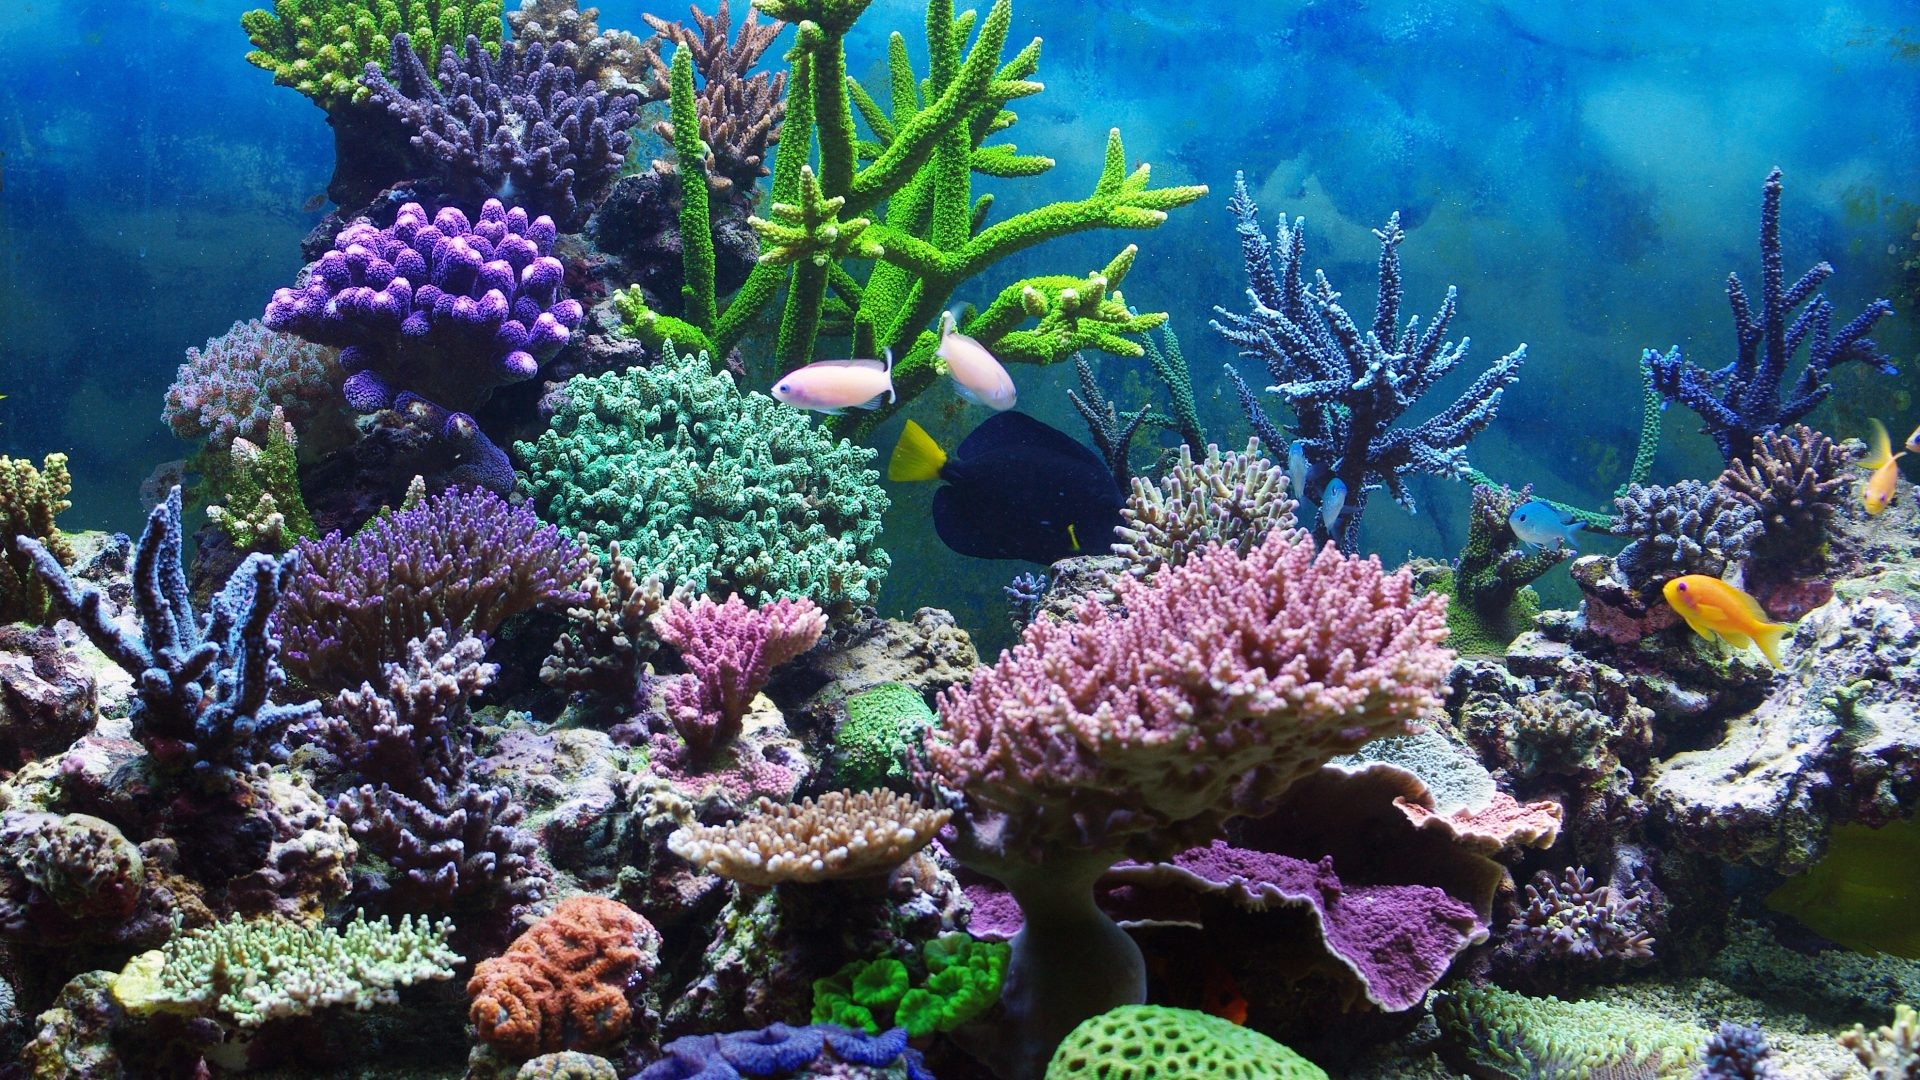 1920x1080 Coral Reefs Tropical Reef Underwater Ocean Desktop Backgrounds : Coral Reefs  for HD 16:9